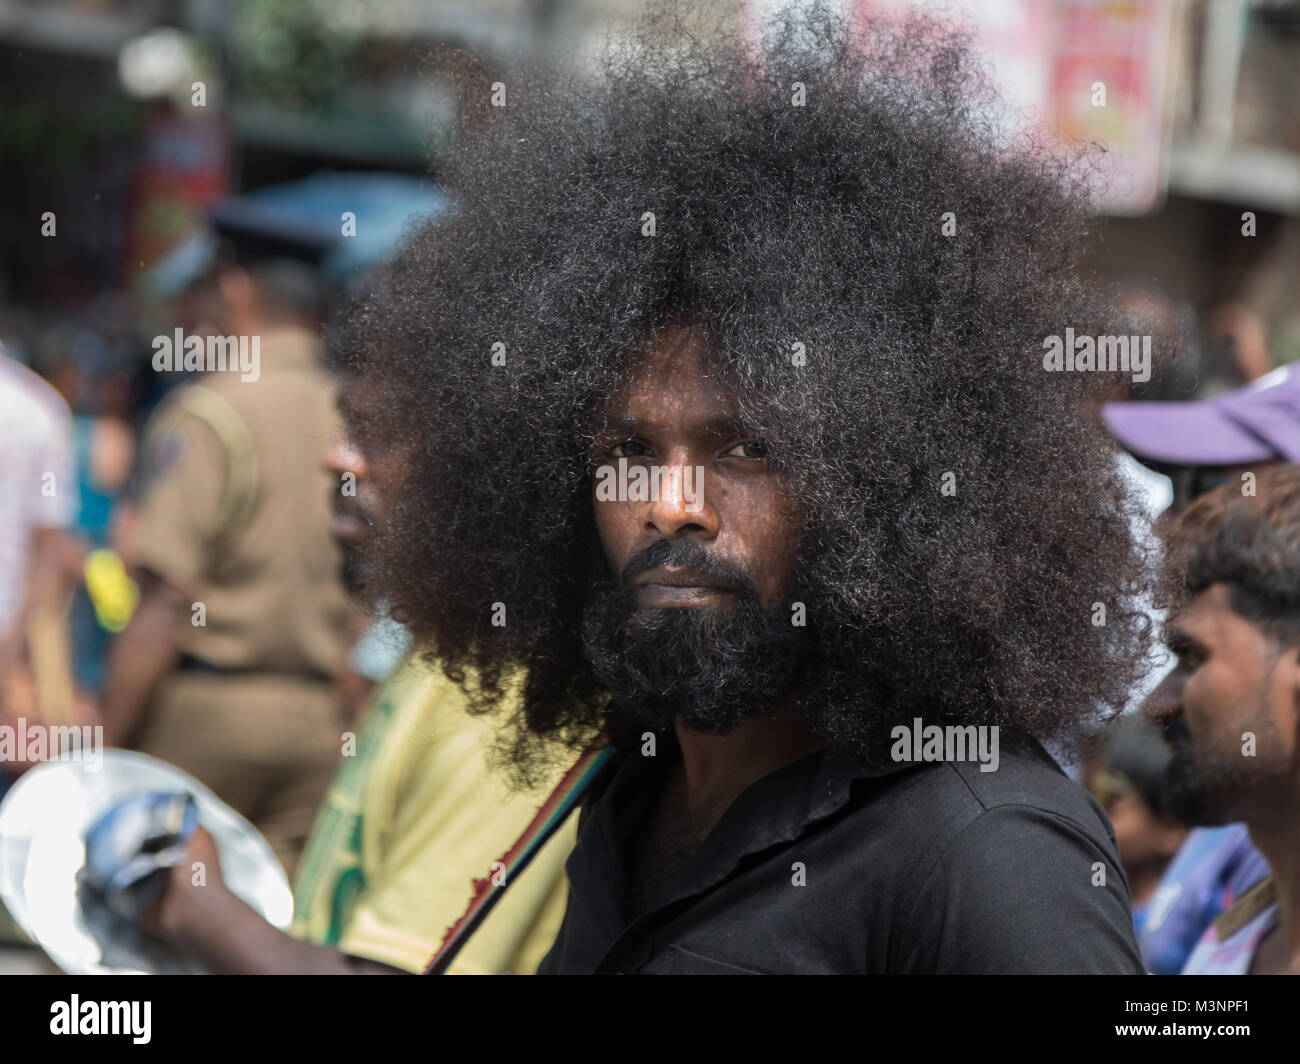 Indian Man Afro Hairstyle Stock Photos Indian Man Afro Hairstyle